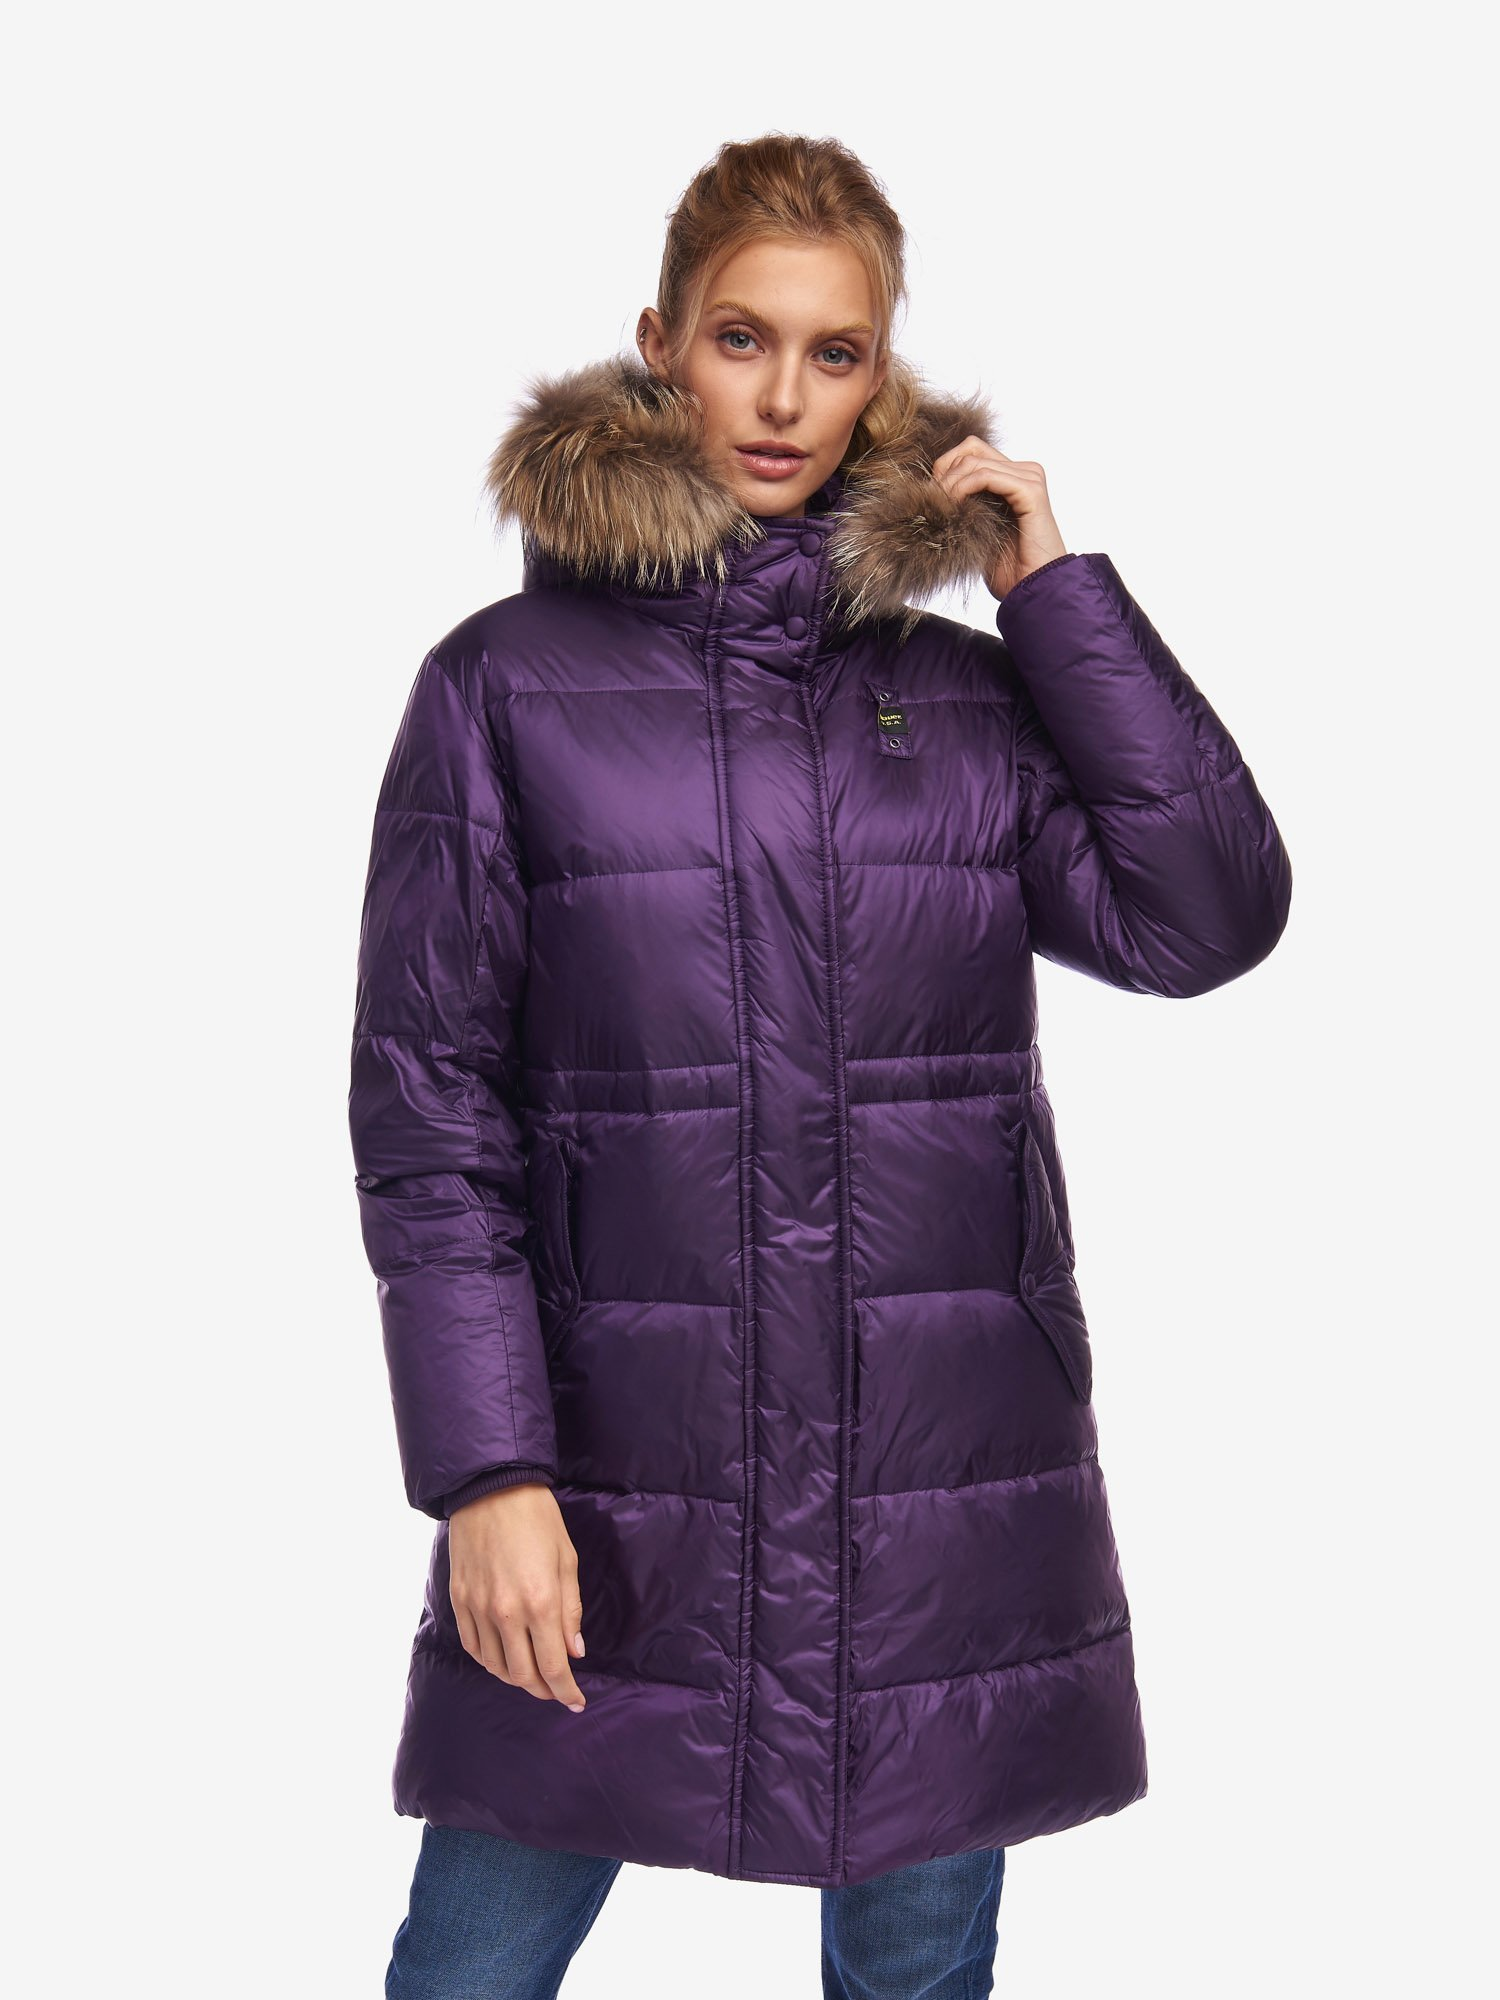 WELLS LONG DOWN JACKET WITH FUR TRIM - Blauer